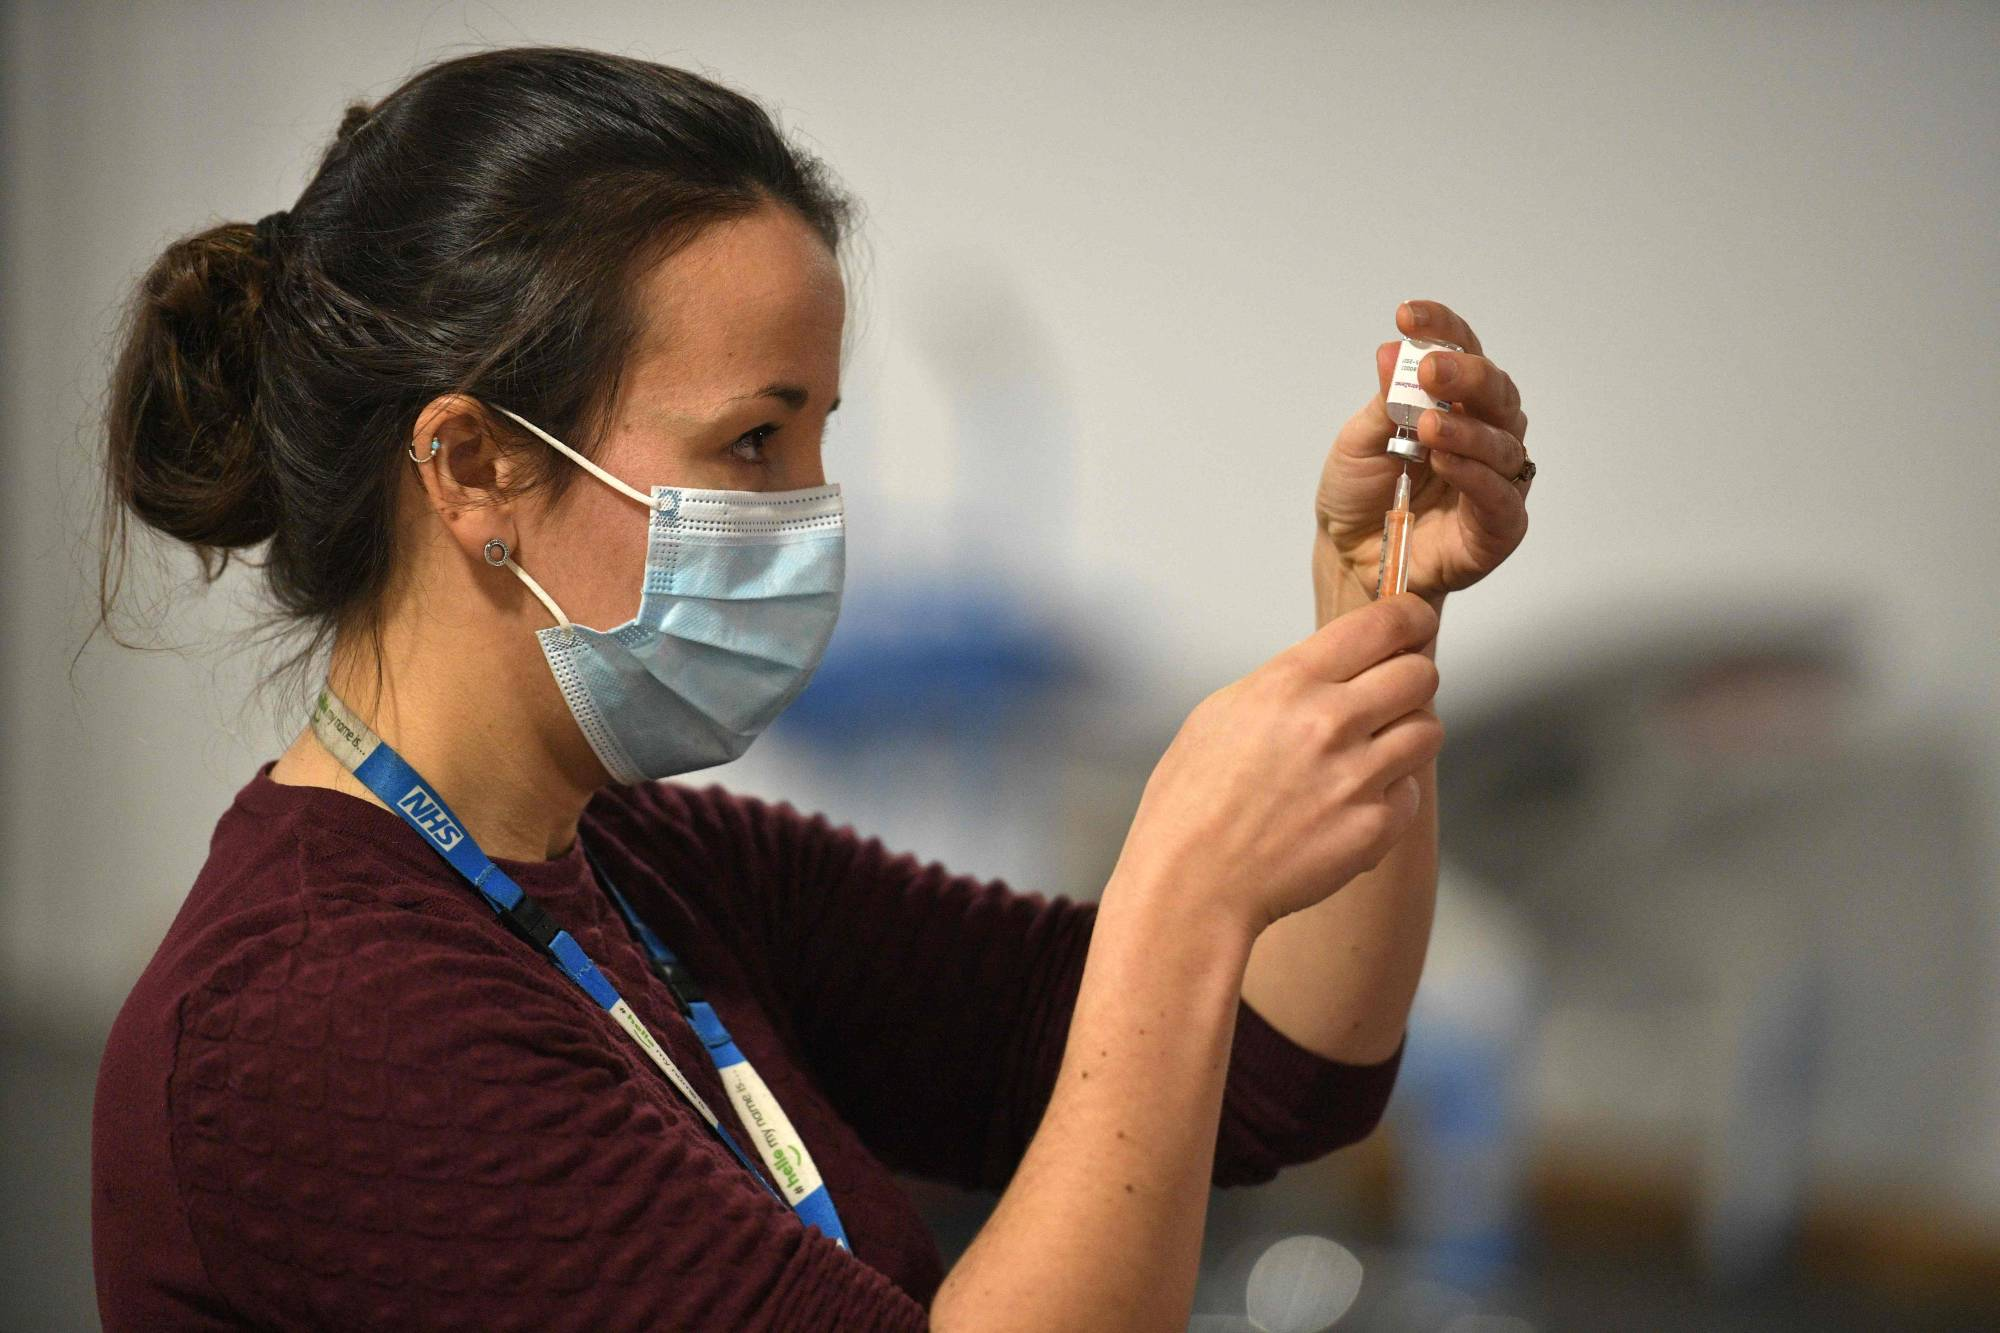 A doctor prepares to administer the Oxford-AstraZeneca COVID-19 vaccine at a temporary vaccination center in the Keepmoat Stadium in Doncaster, England, on Saturday. | AFP-JIJI